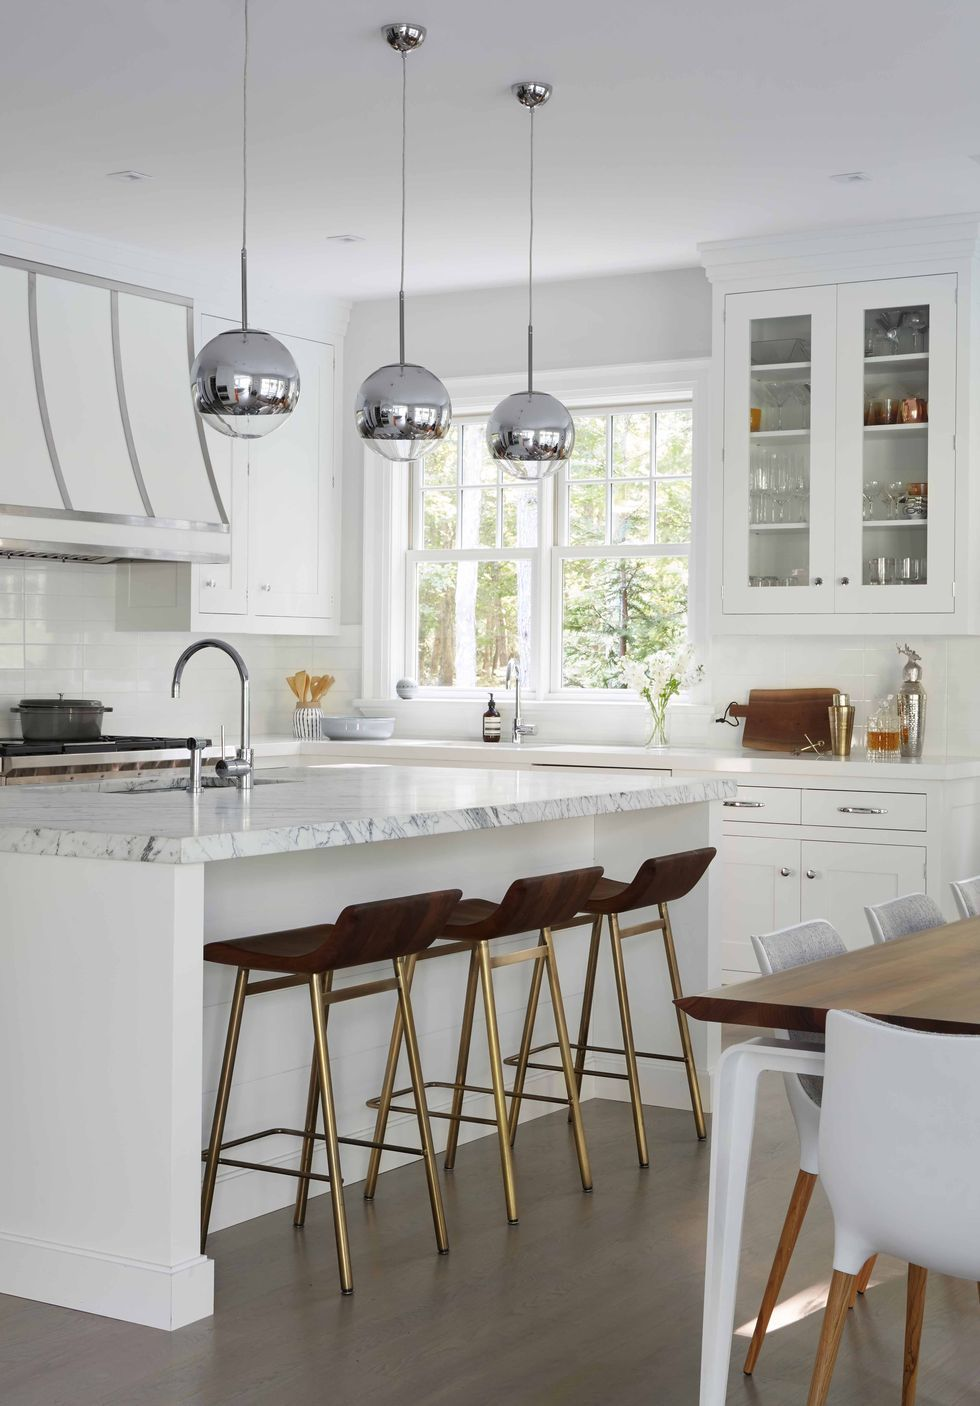 3 Best White Kitchen Ideas - Photos of Modern White Kitchen Designs